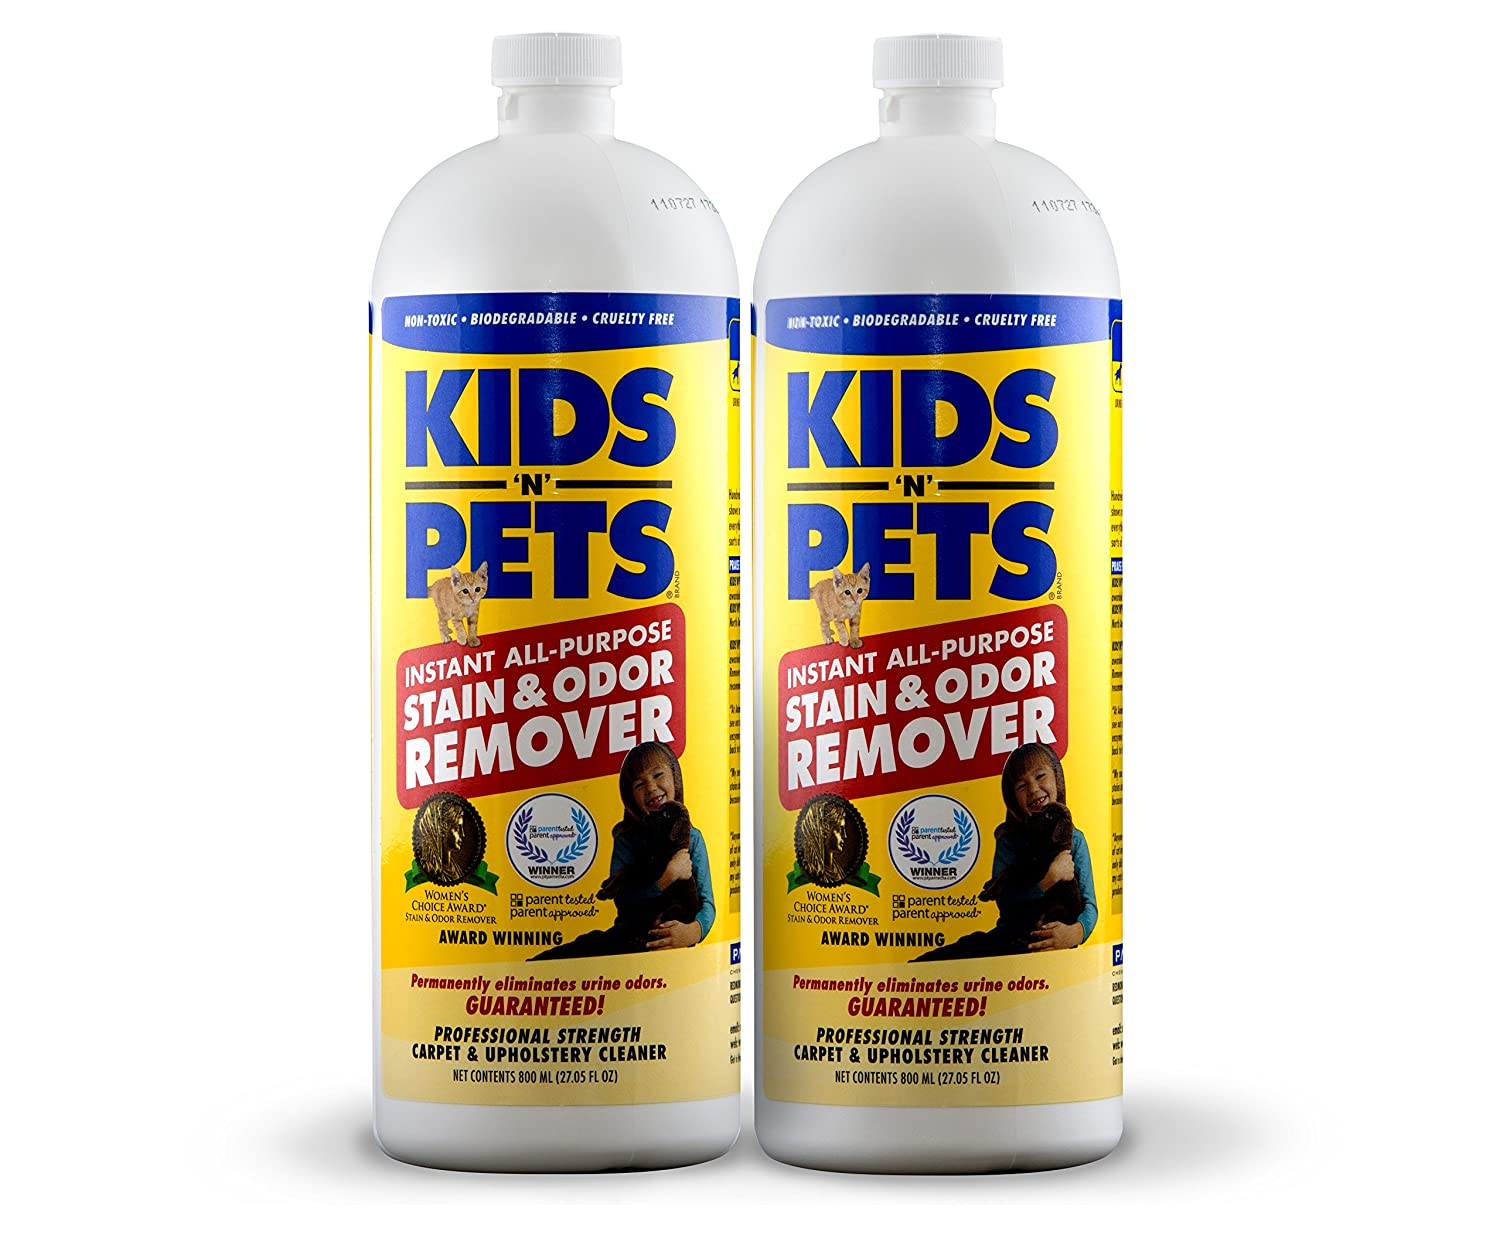 KIDS N PETS Stain and Odor Remover, 27-Ounce INC. N/A